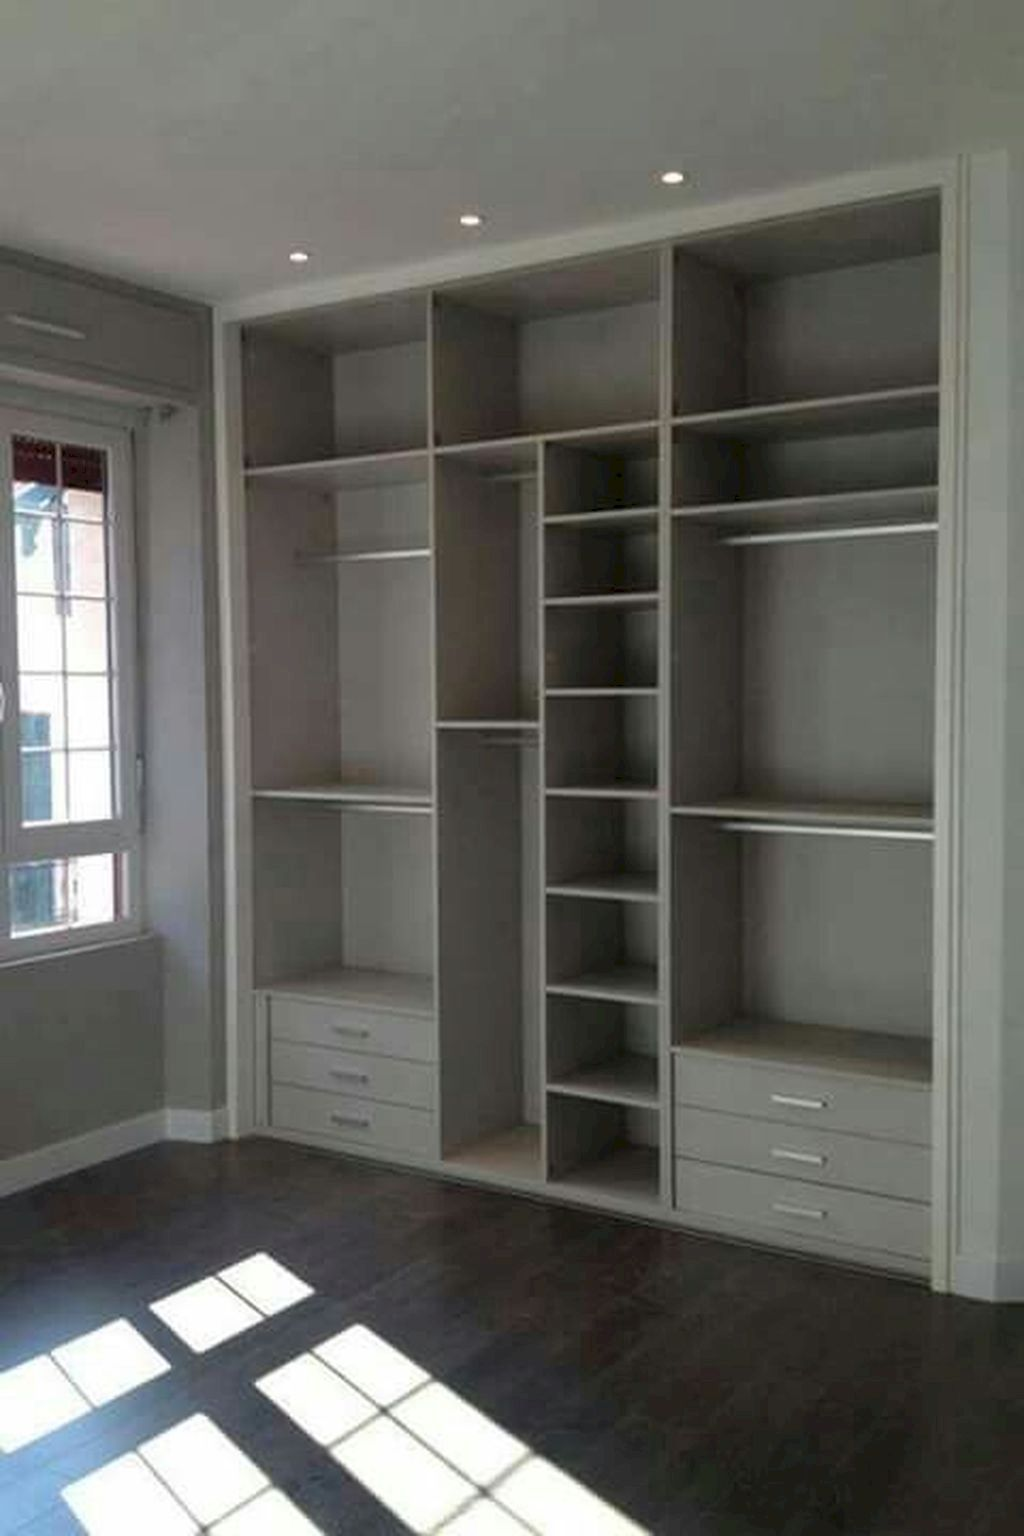 Diy Fitted Wardrobes Save House And Add Type In 2020 Closet Small Bedroom Closet Designs Bedroom Organization Closet